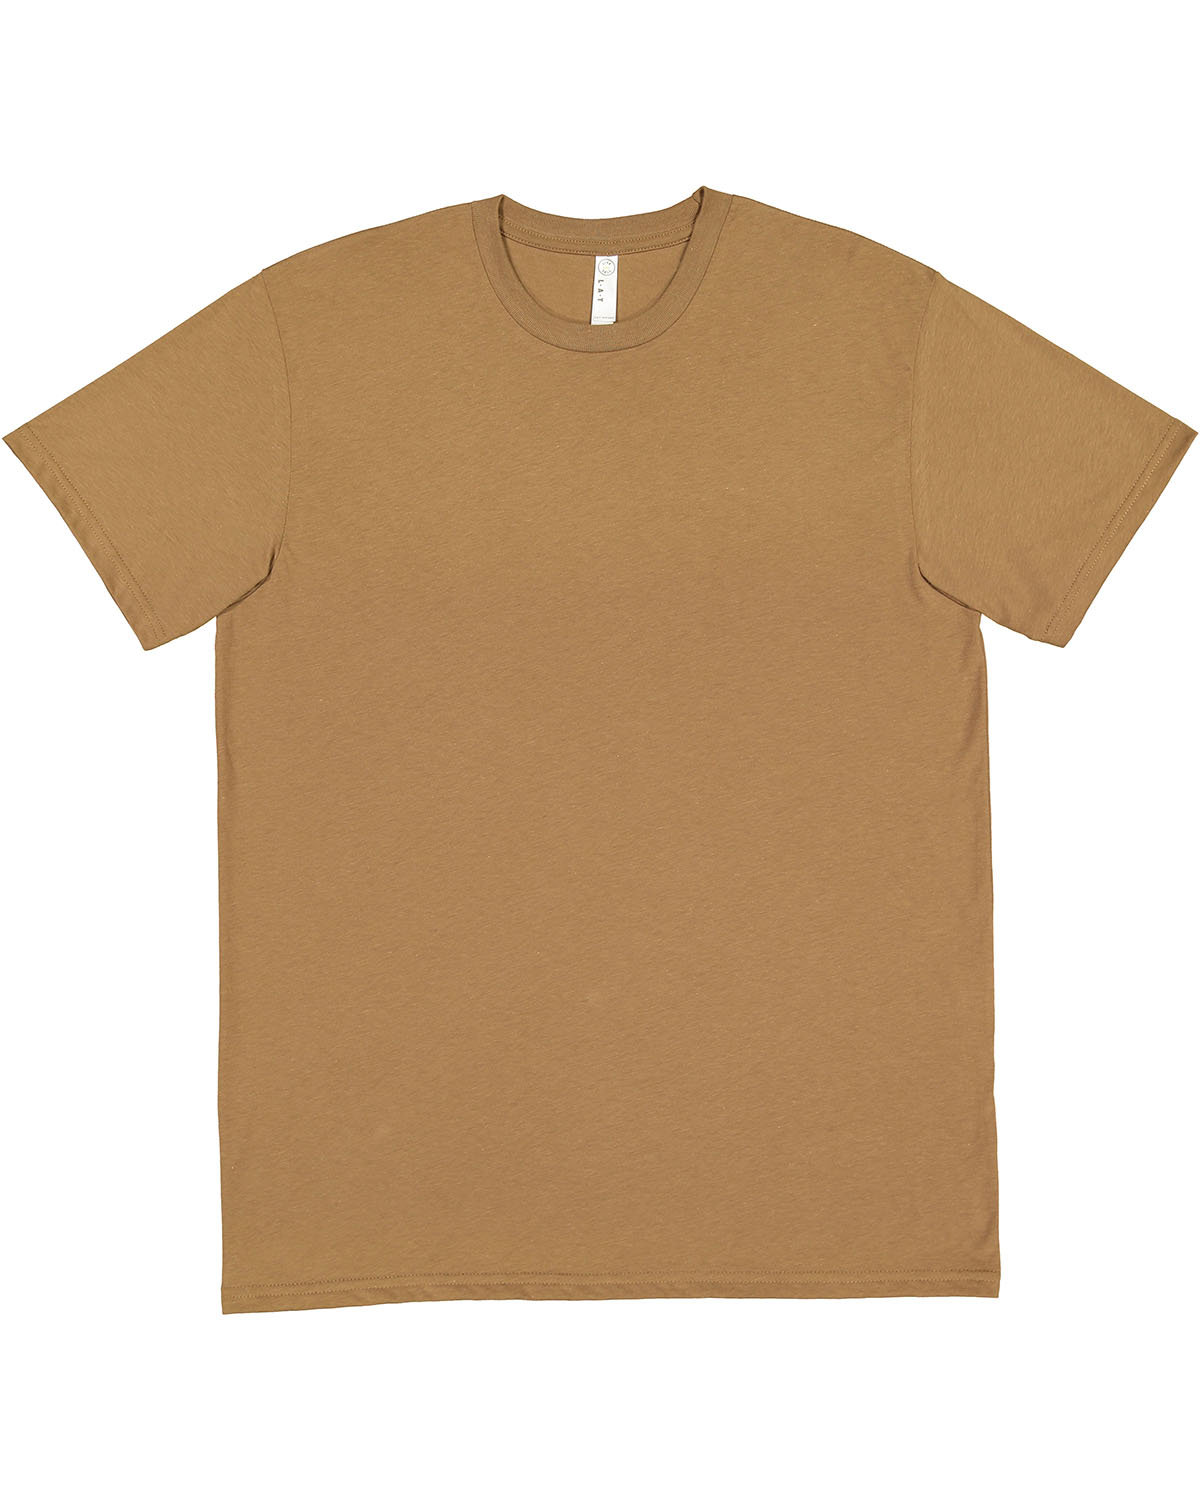 LAT Youth Fine Jersey T-Shirt COYOTE BROWN